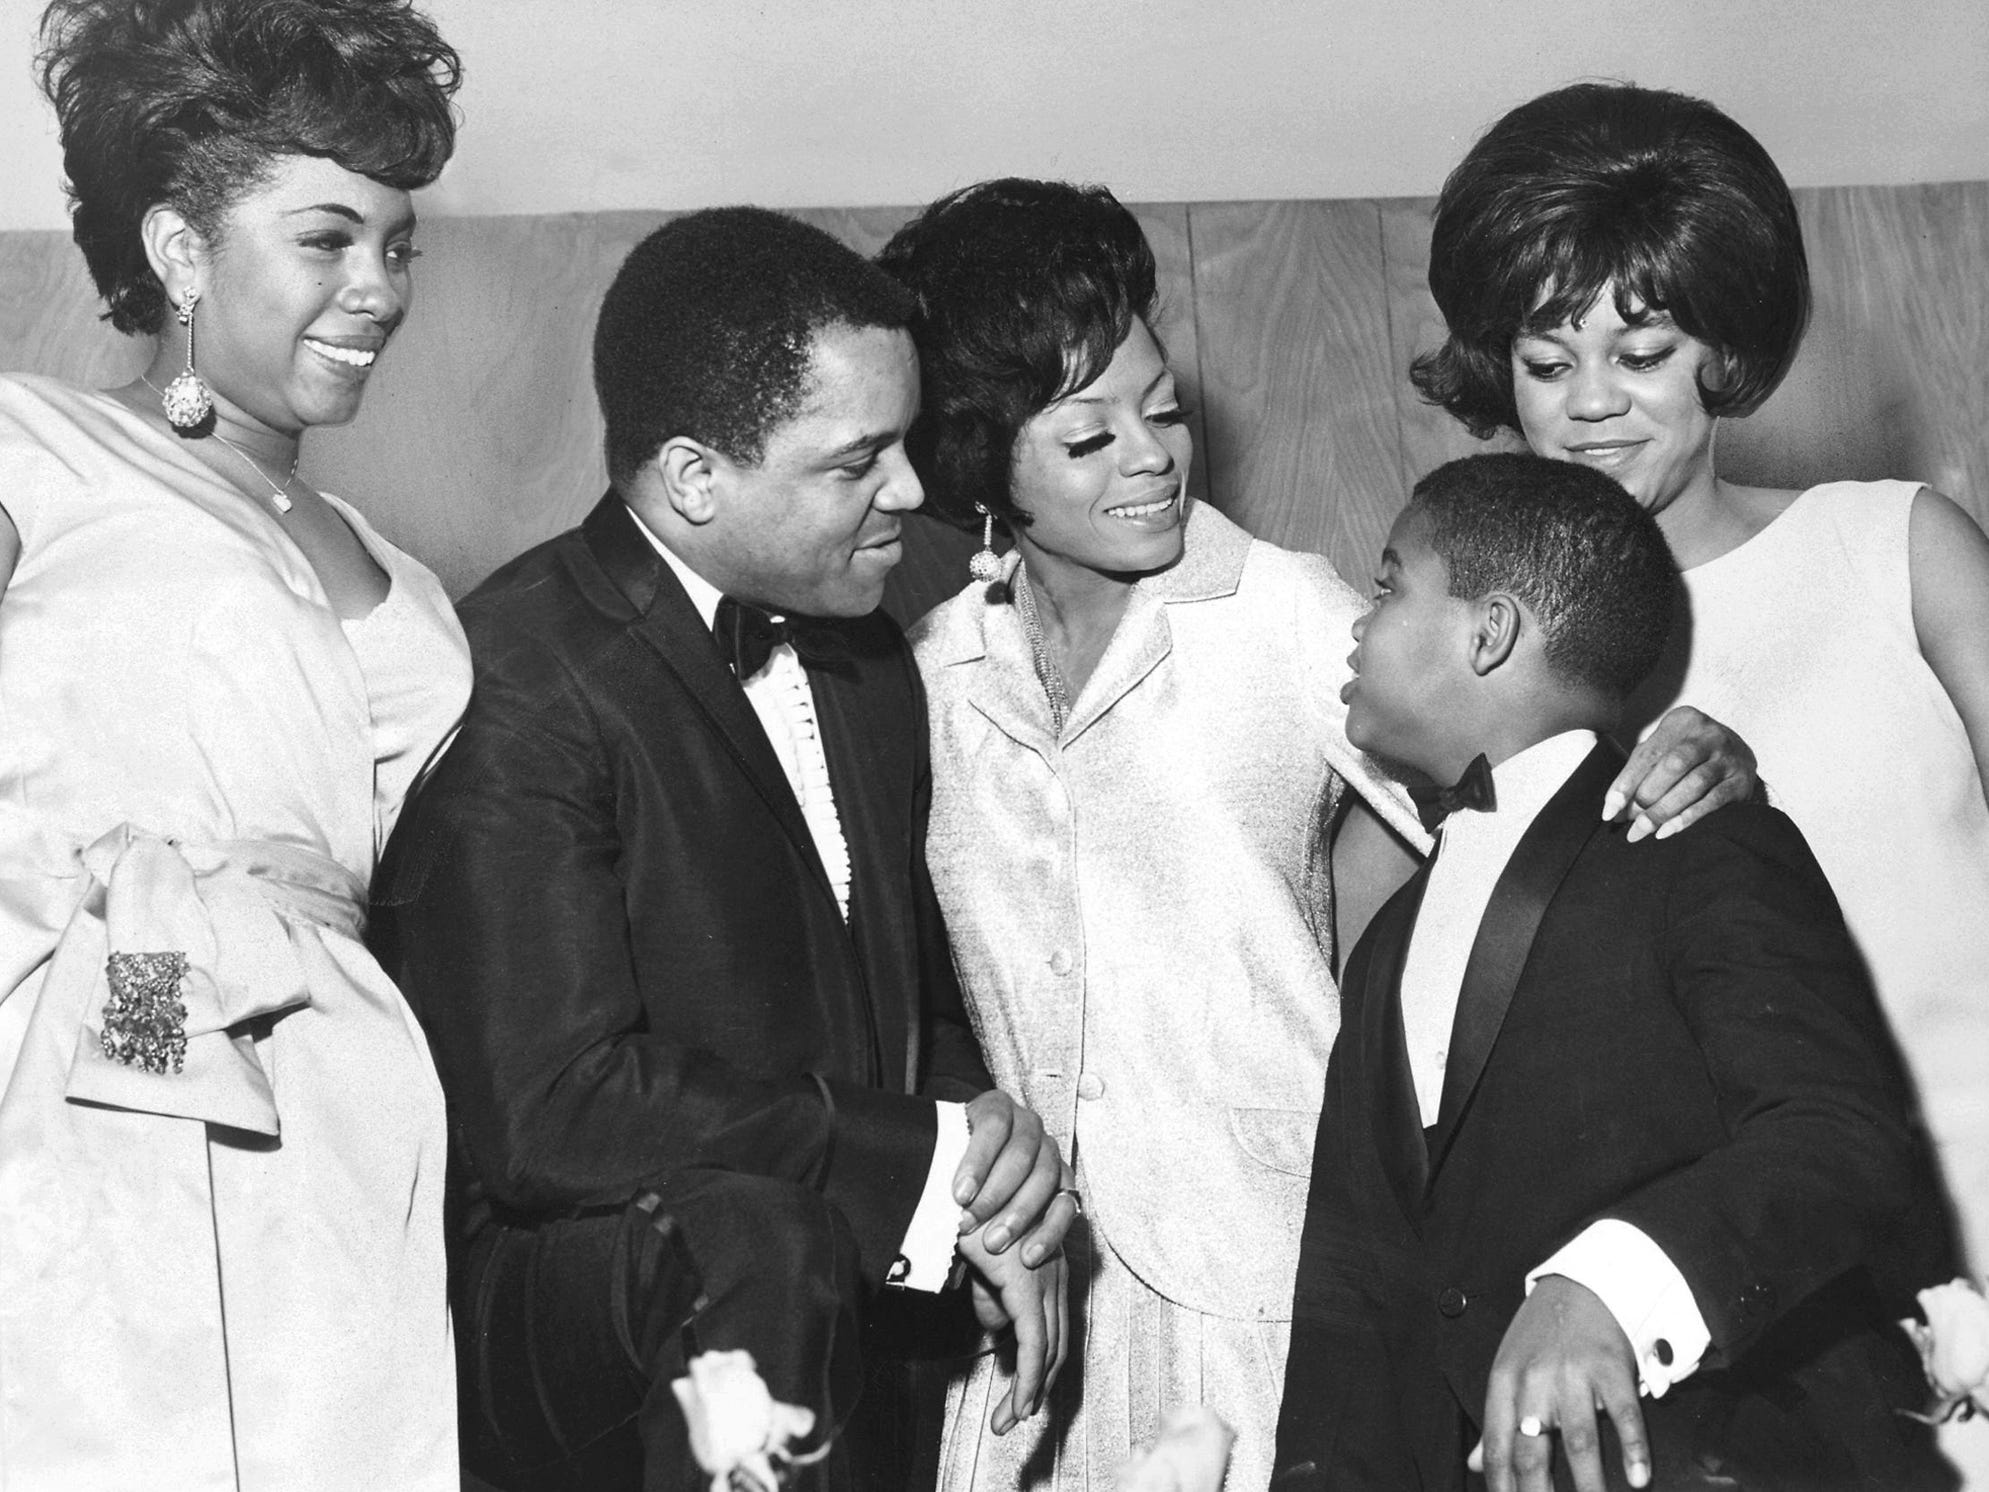 The Supremes are seen with Berry Gordy Jr. and Berry Gordy IV at an event in January 1966. Diana Ross is at center next to Berry Gordy Jr., her mentor and later her paramour, and the father of her daughter Rhonda.